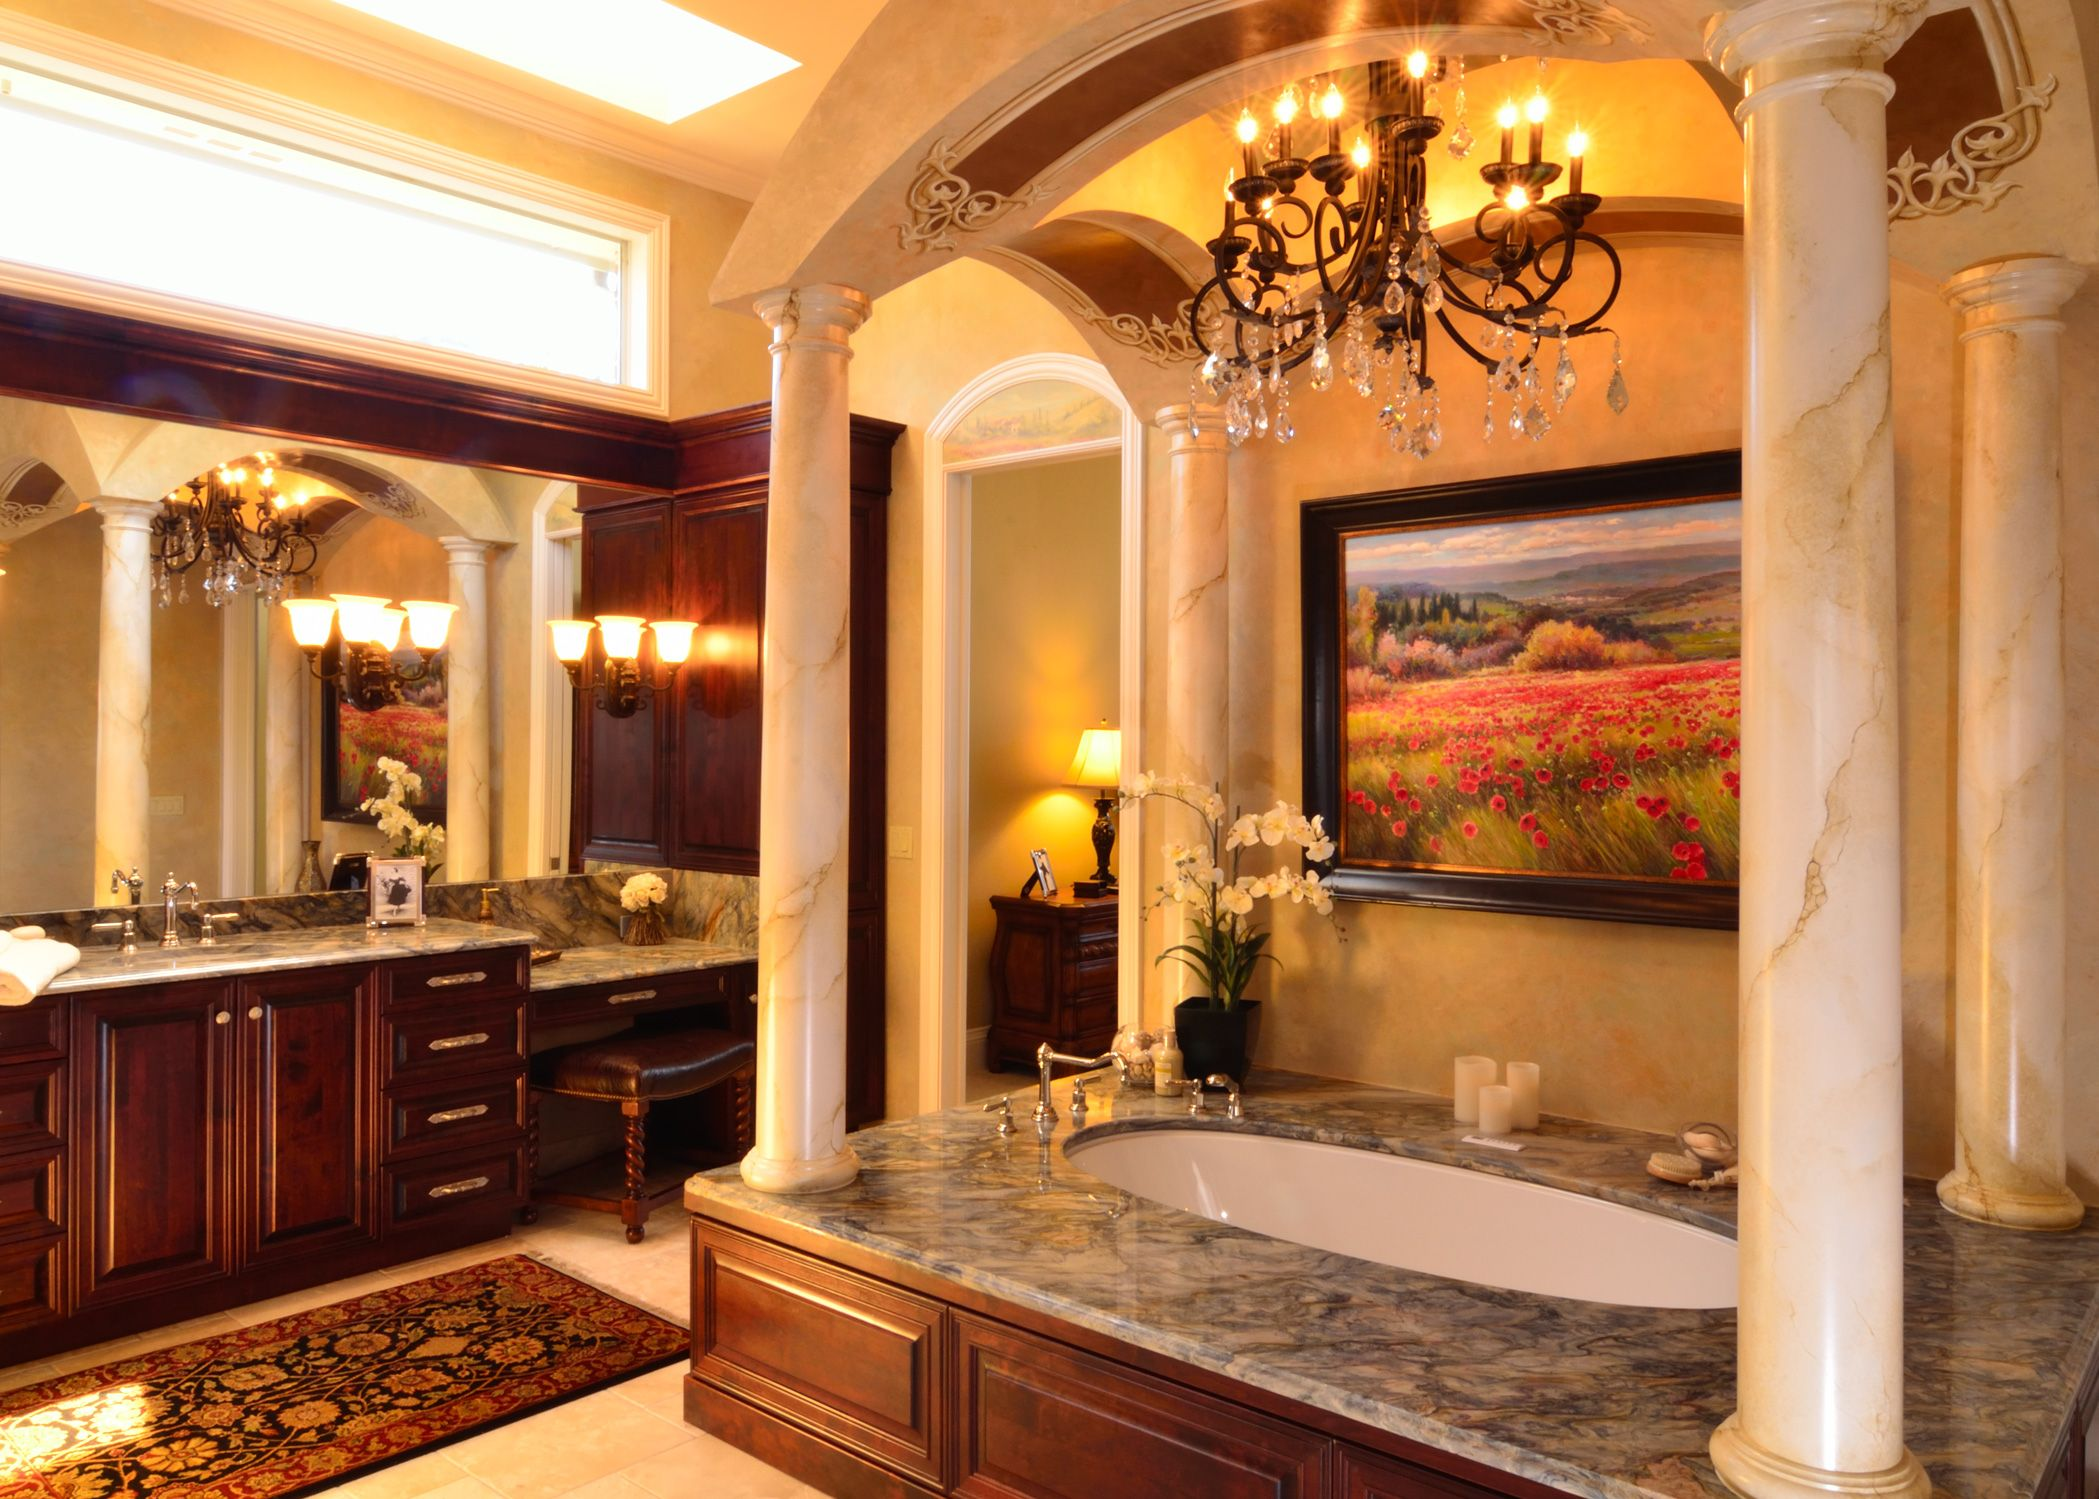 Charmant Best Images, Photos And Pictures Gallery About Tuscan Bathroom Ideas    Tuscan Style Homes.